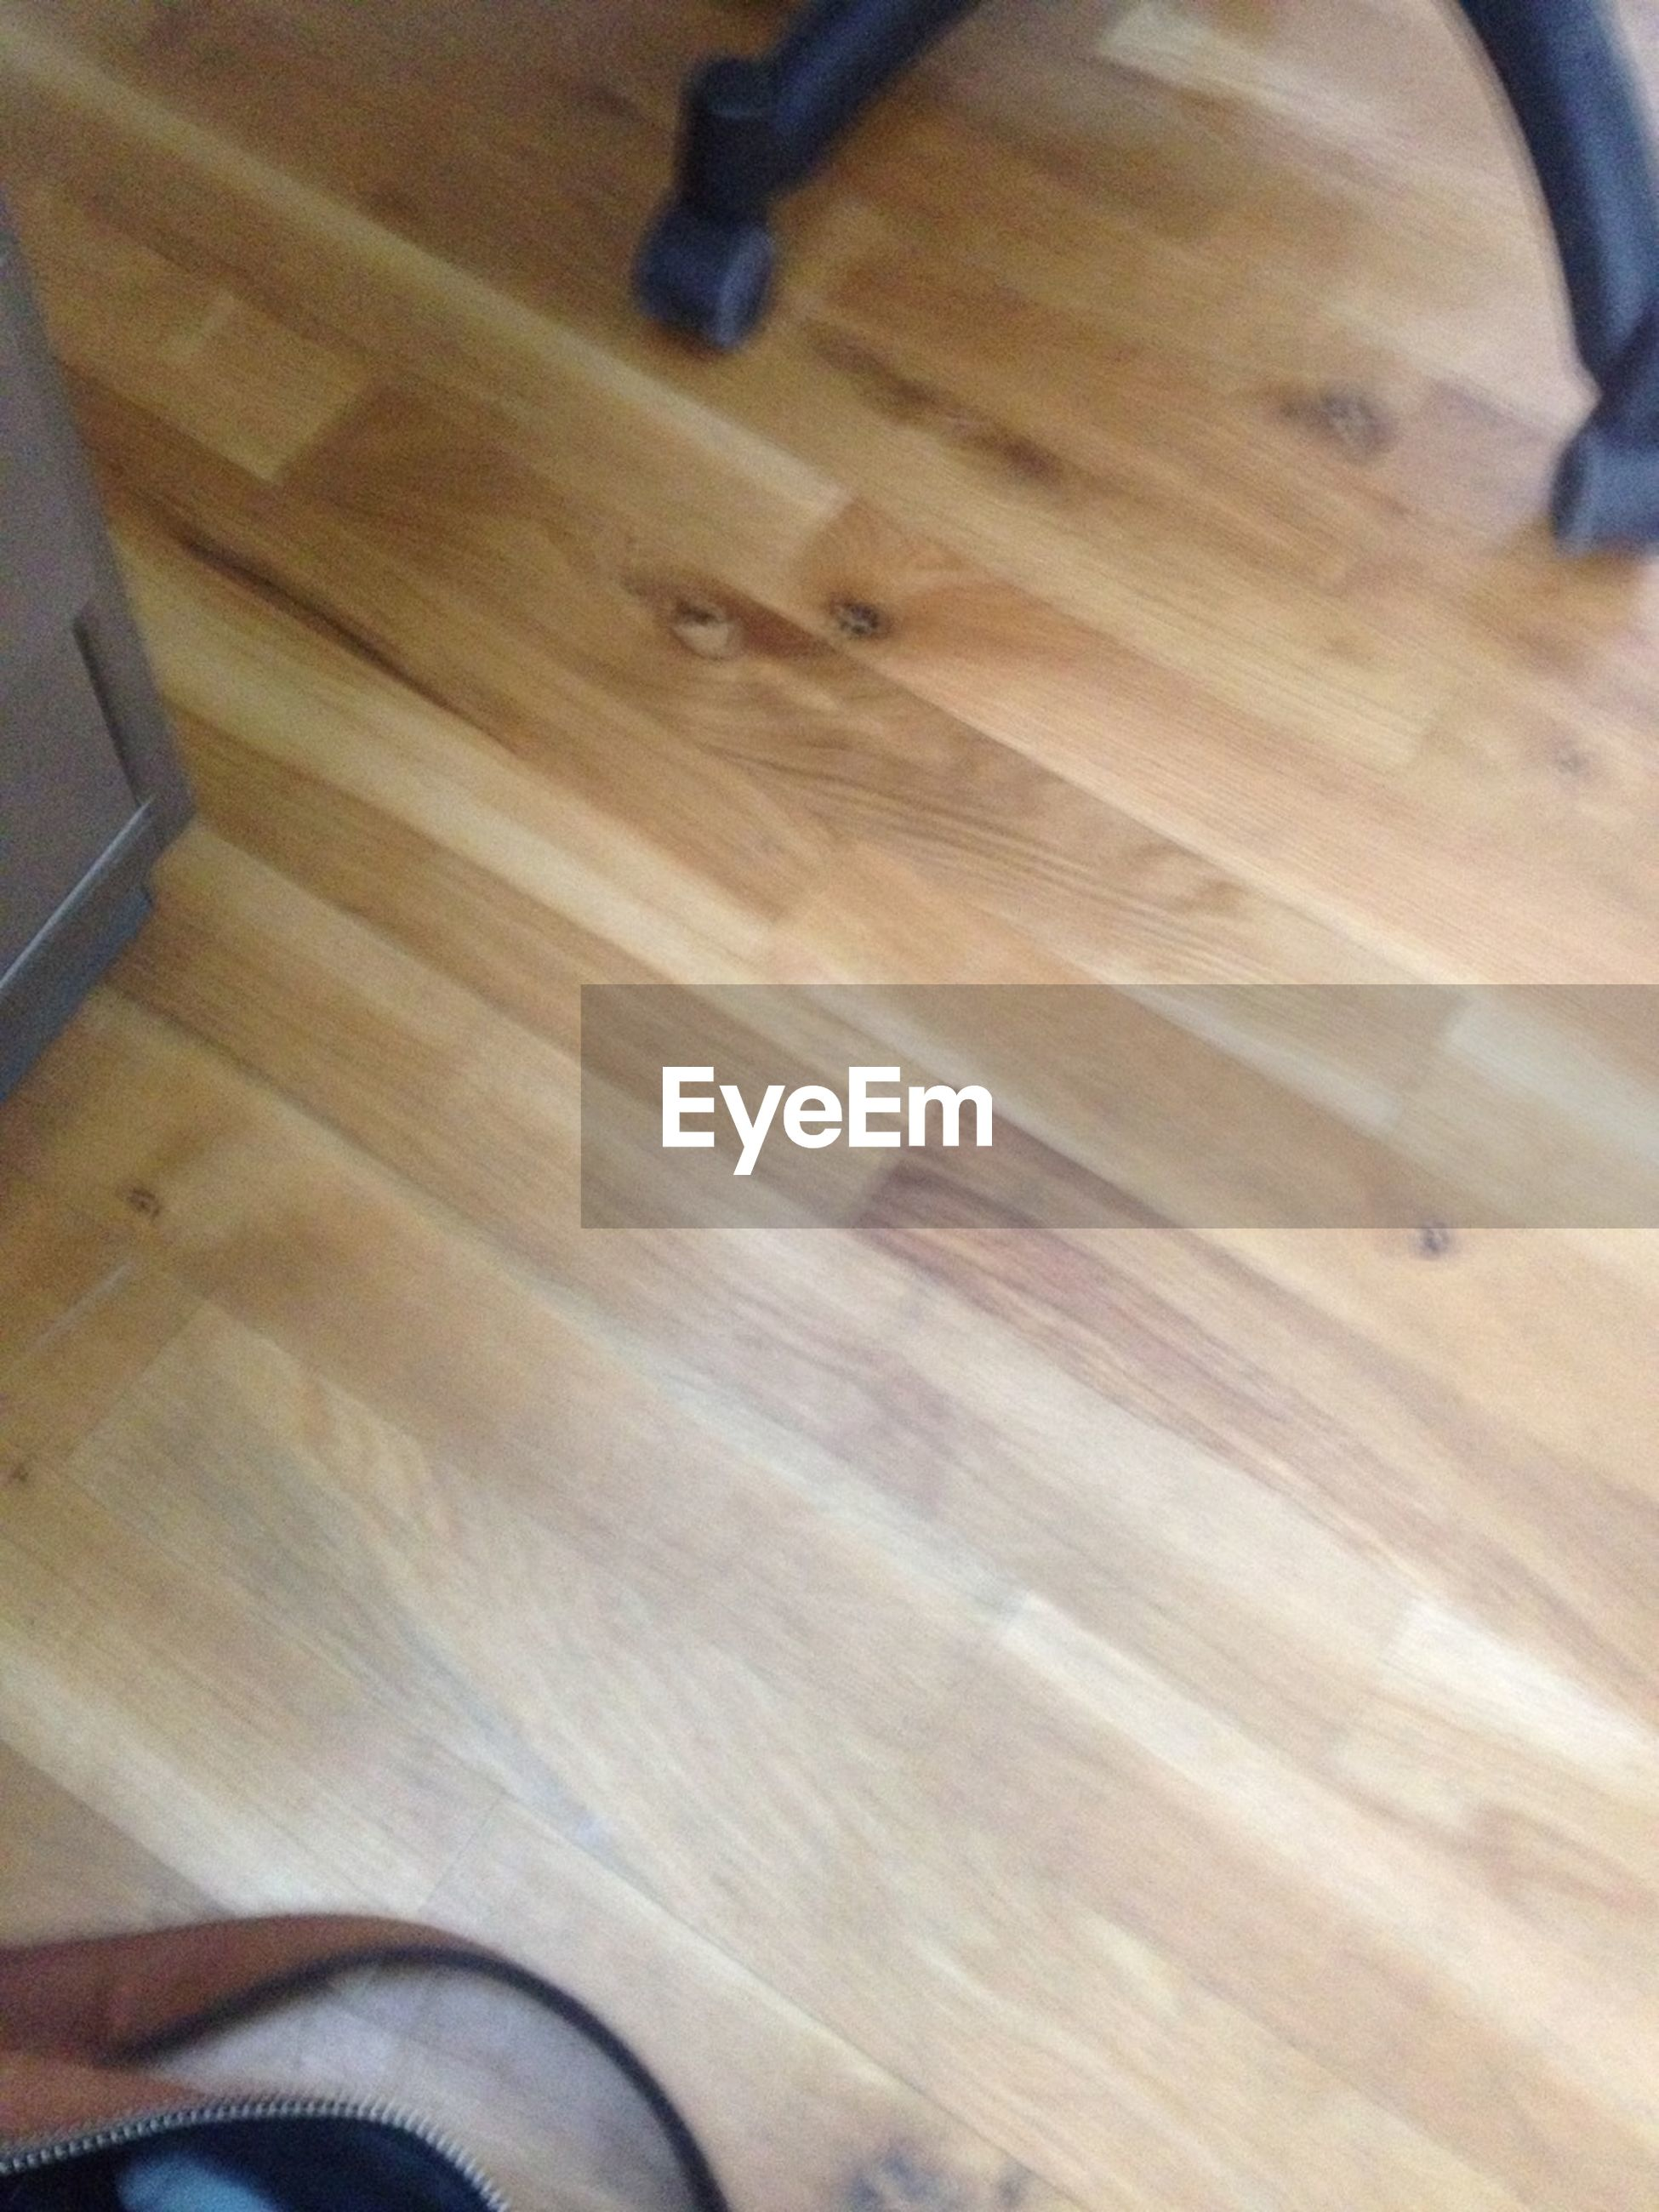 indoors, wood - material, high angle view, hardwood floor, part of, wooden, close-up, brown, flooring, wood, pattern, table, cropped, person, low section, textured, plank